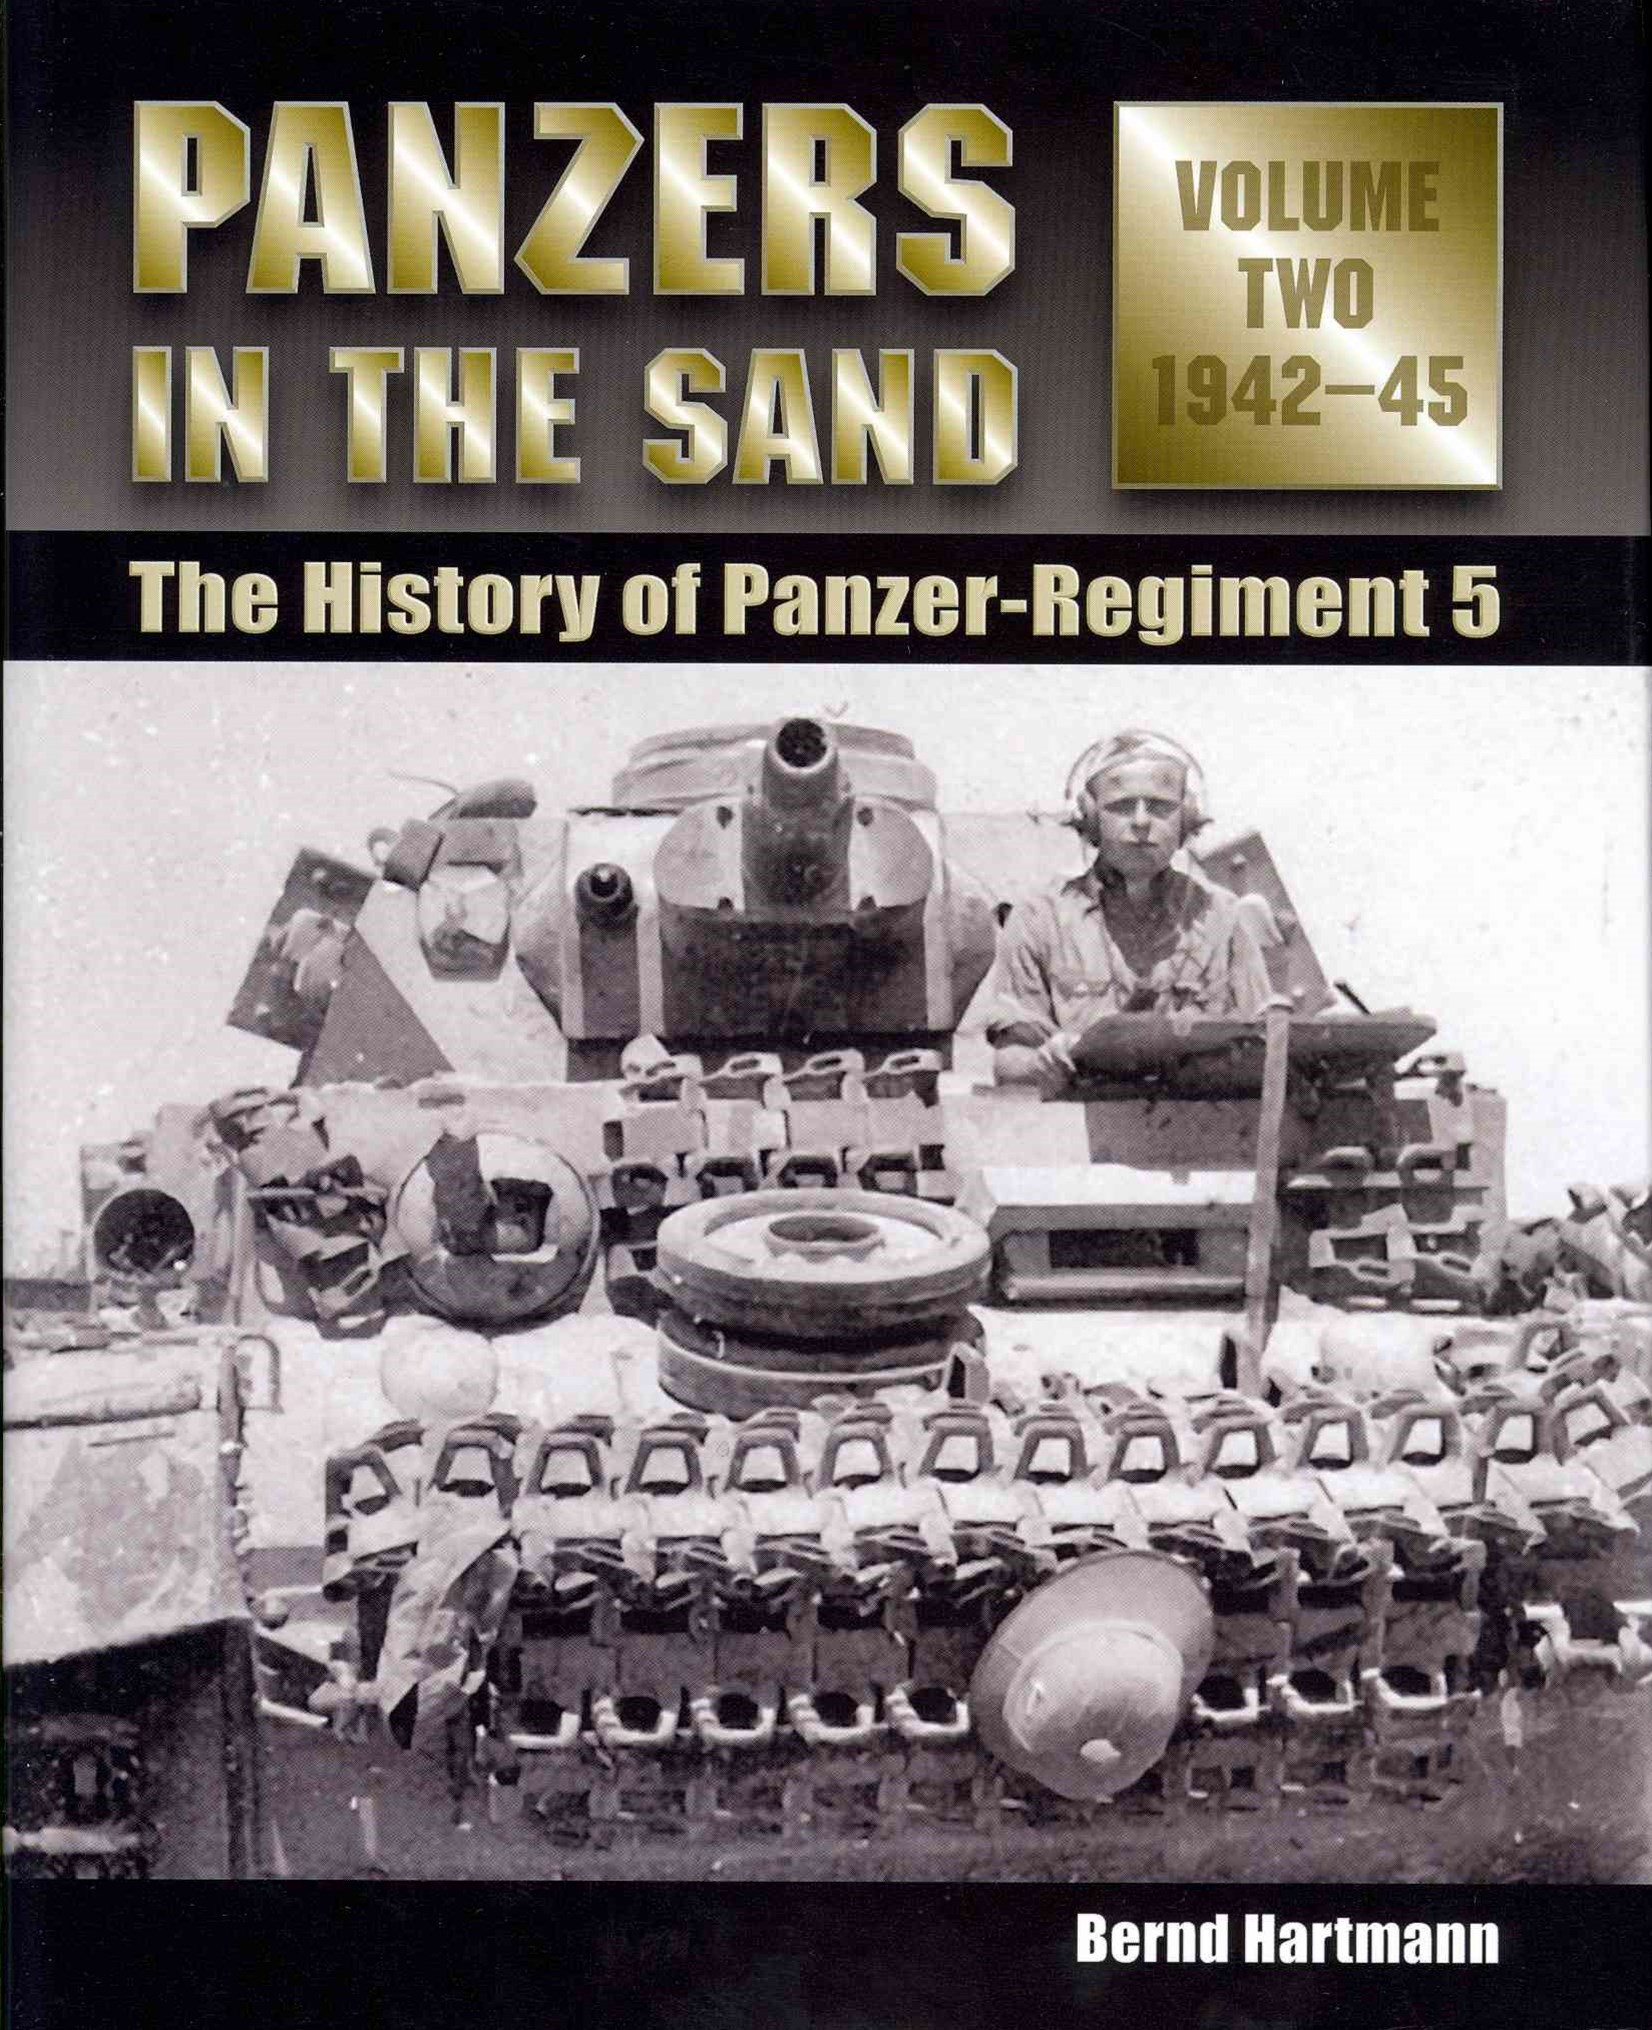 Panzers in the Sand: Volume 2 1942-45